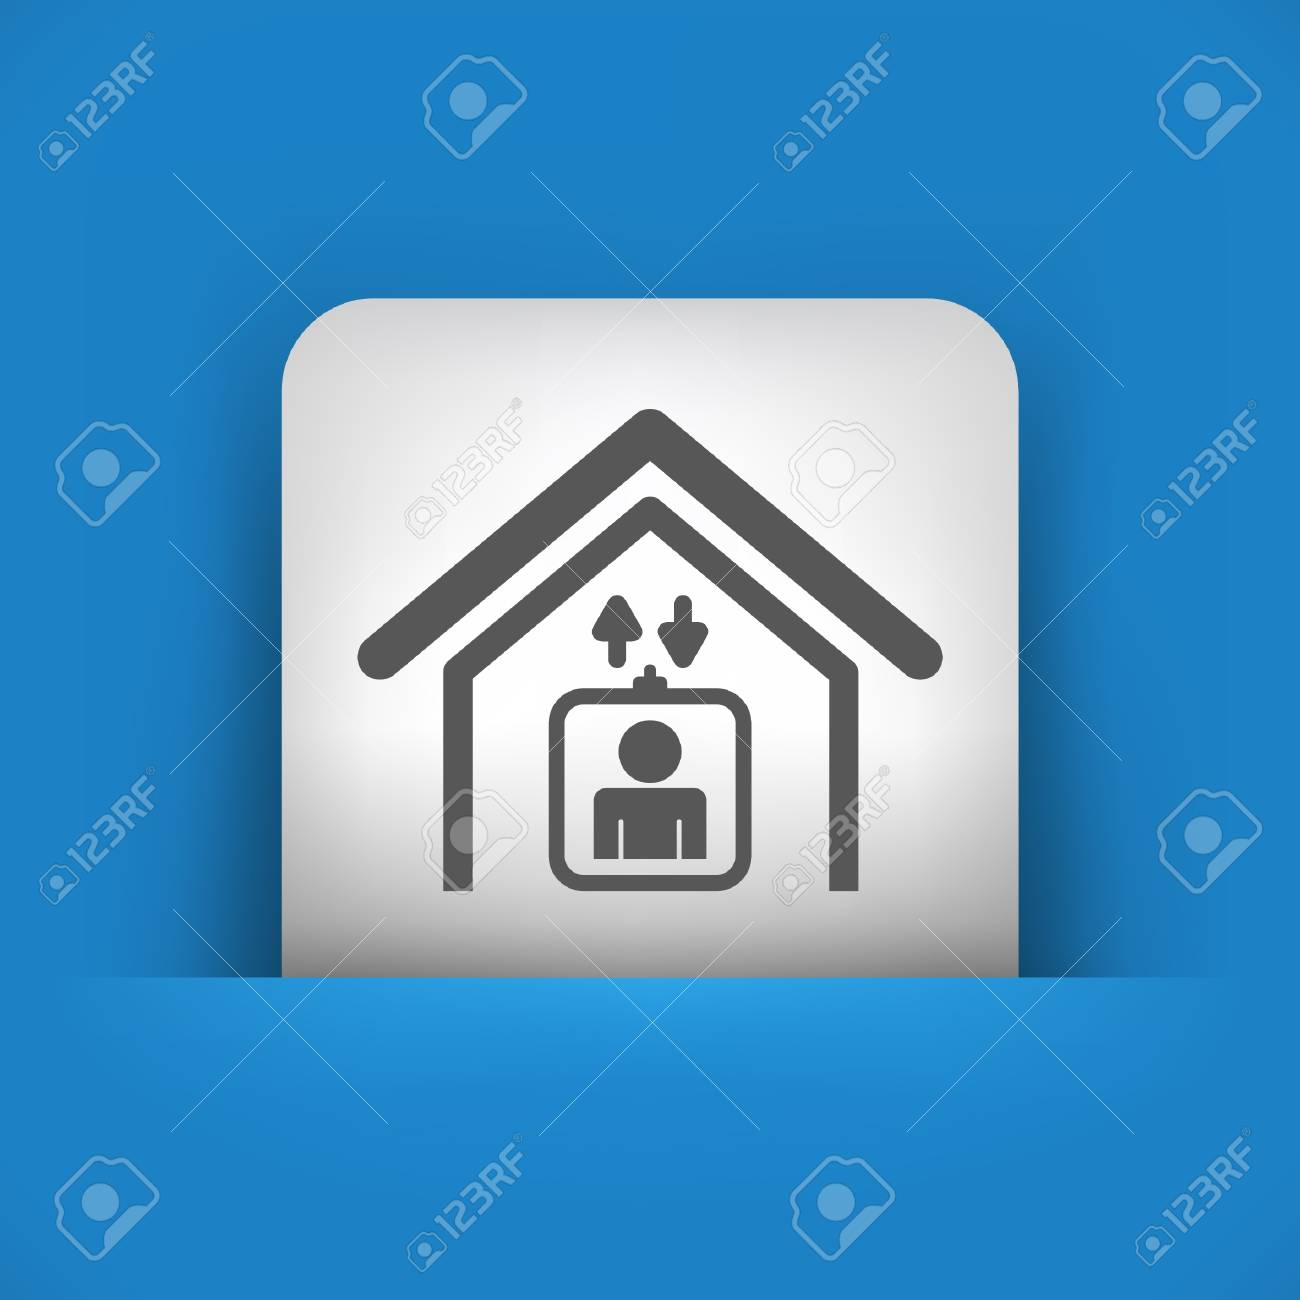 Vector illustration of single blue and gray isolated icon. Stock Vector - 17782940